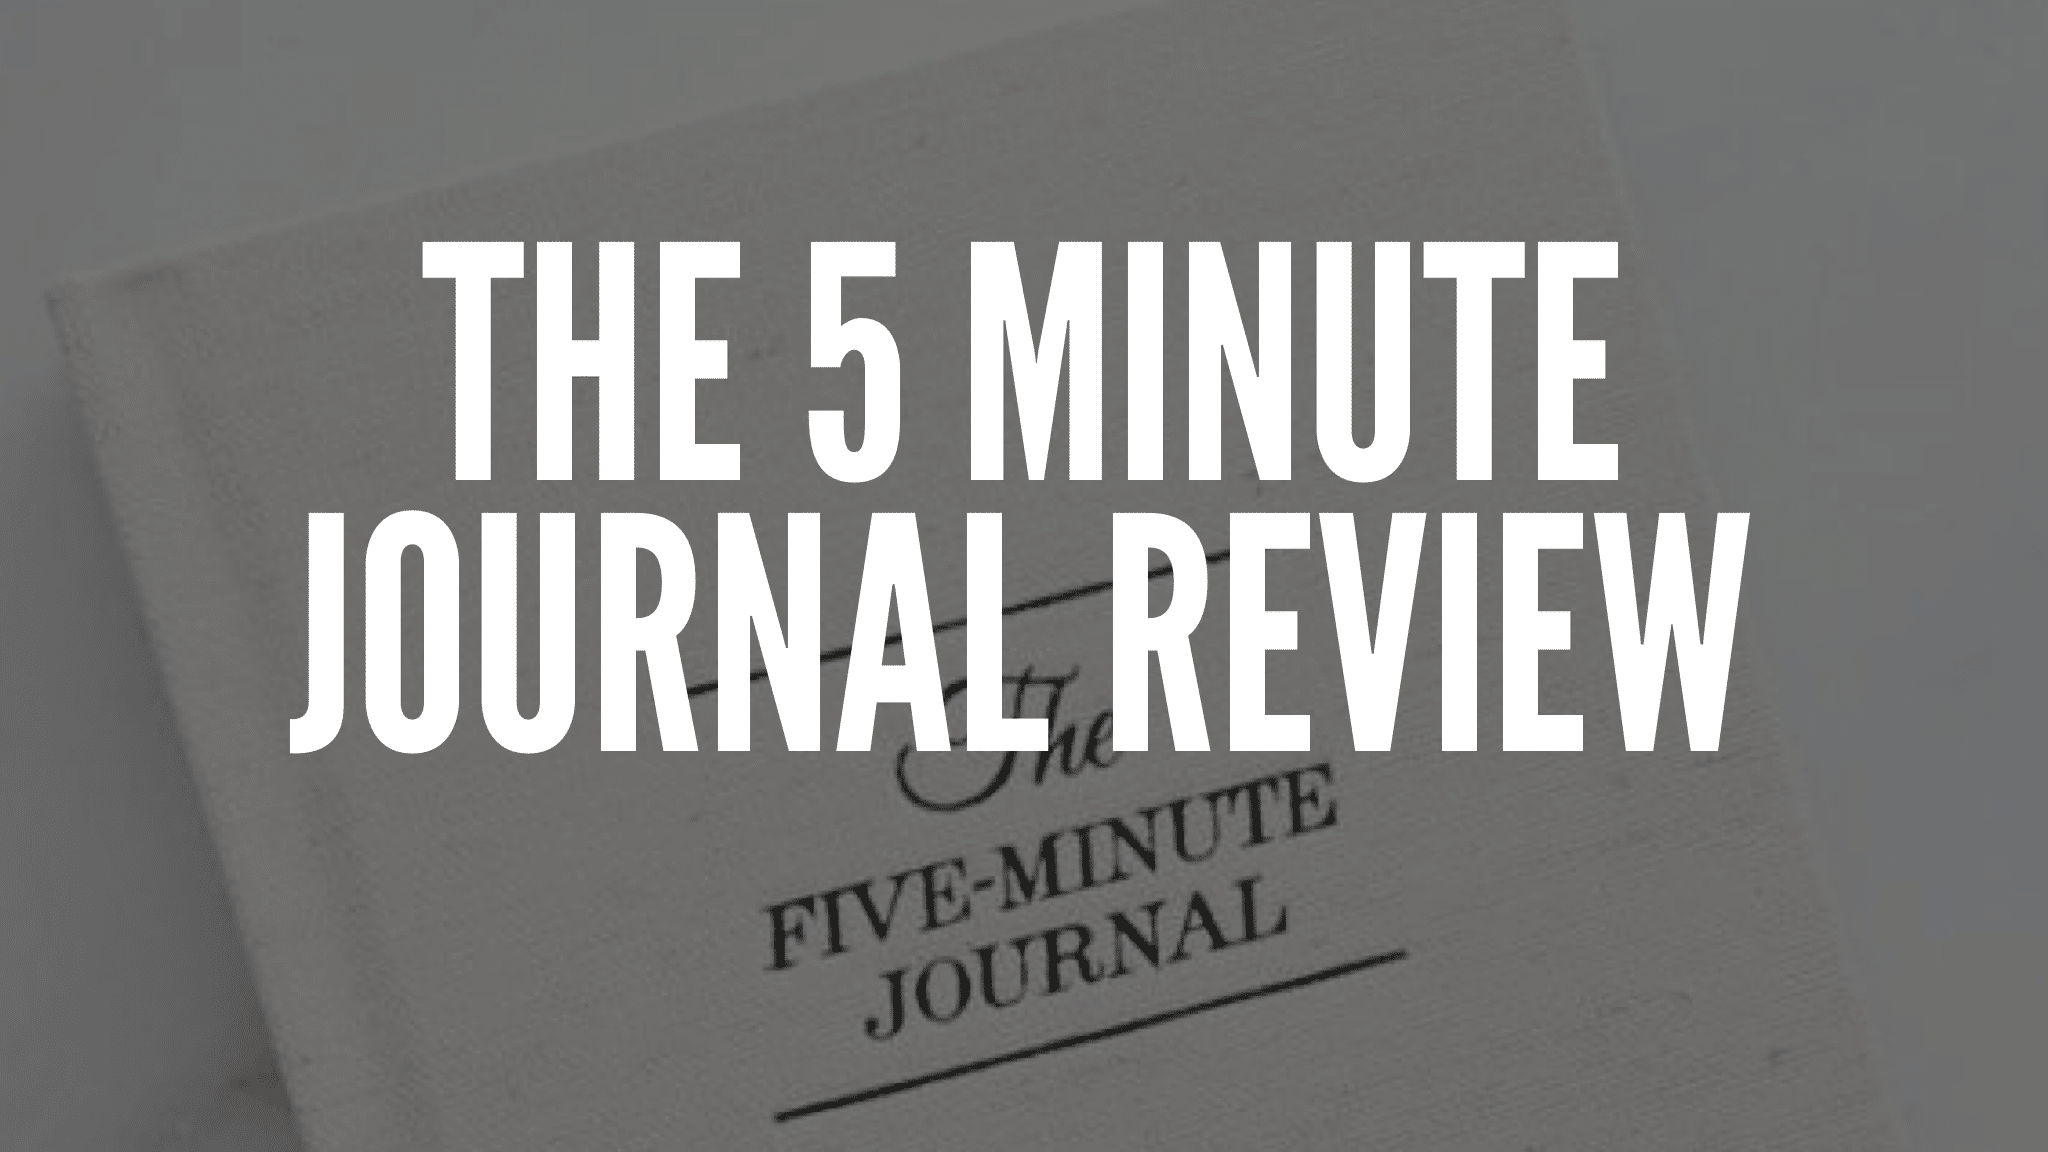 The 5 Minute Journal Review